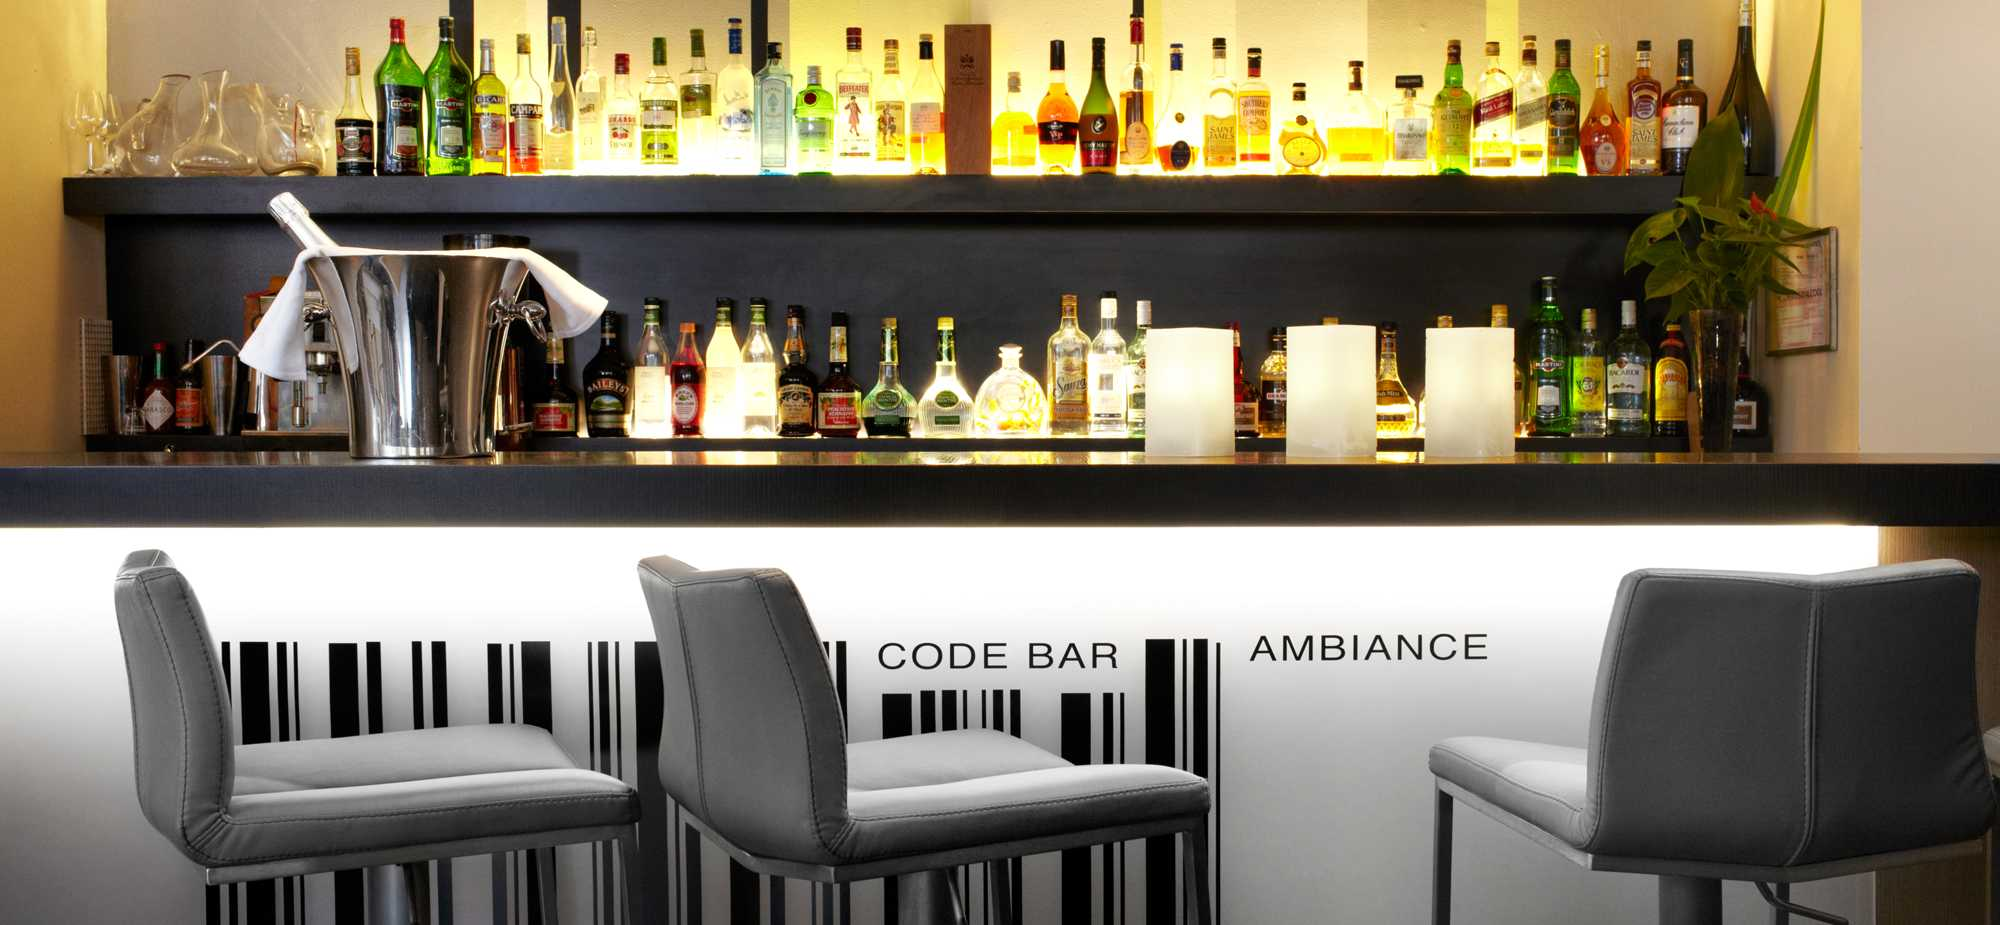 Code Ambiance has potential but needs to sharpen up, writes Lesley Chesterman